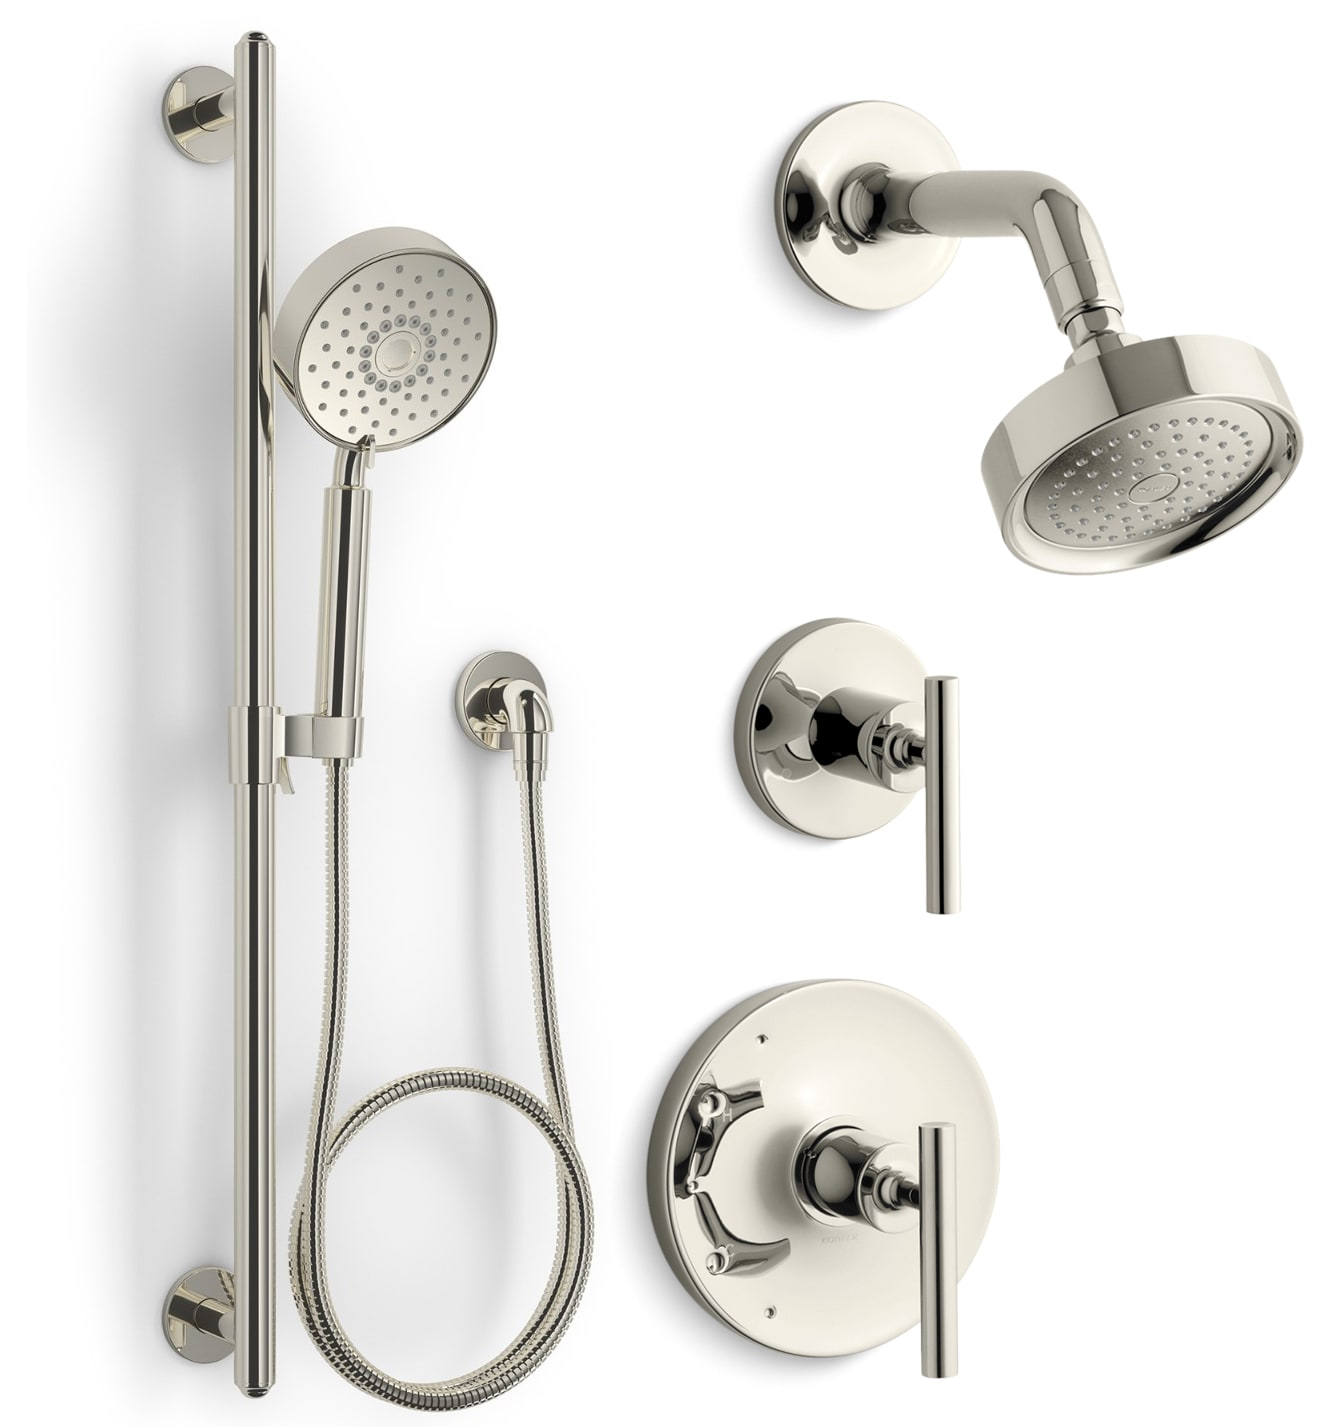 Kohler Kss Purist 4 Rths Cp Polished Chrome Purist Pressure